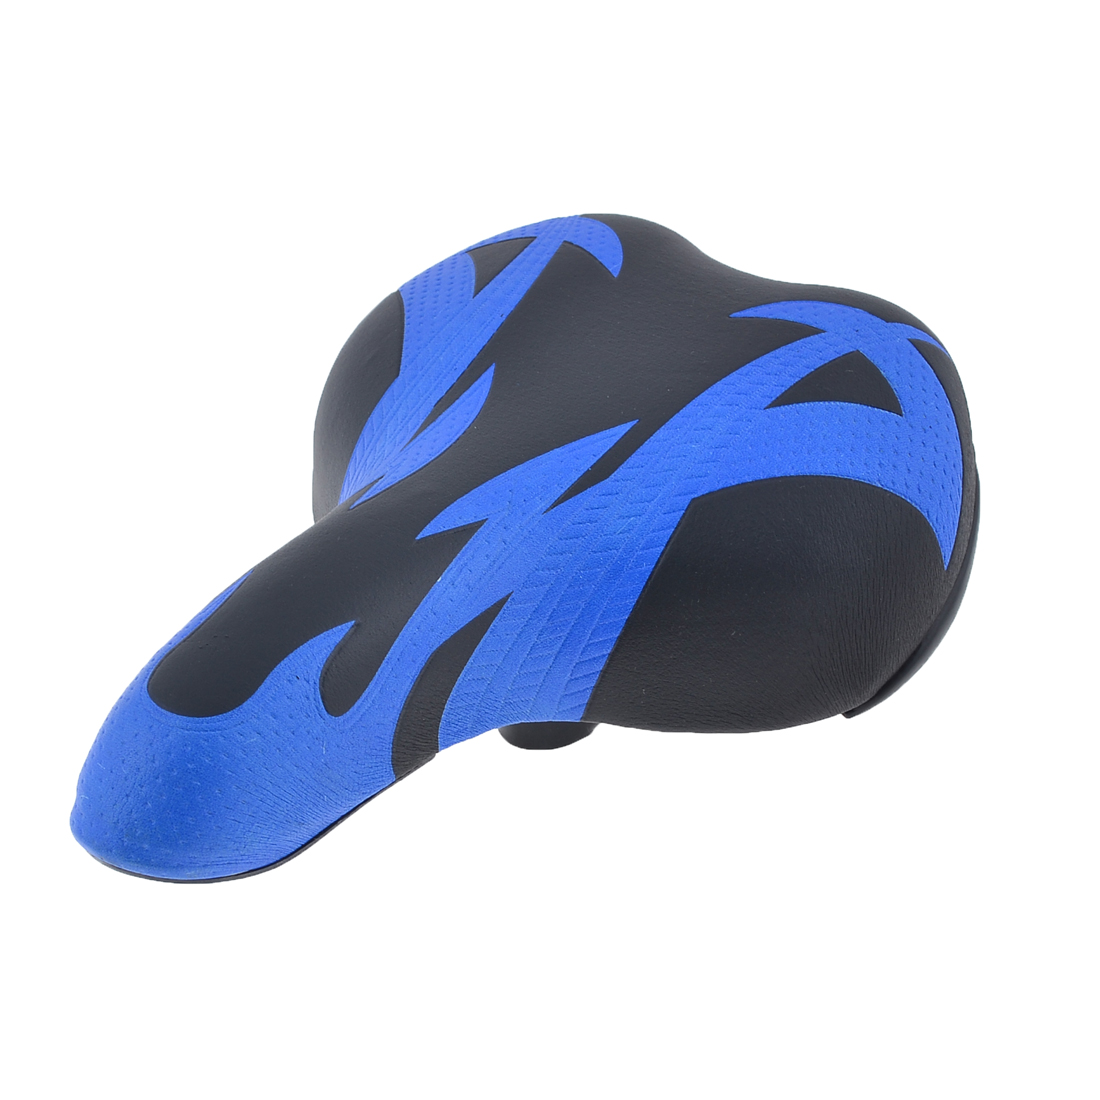 Replaceable Blue Black Bike Seat Foam Padding Saddle for Bicycle